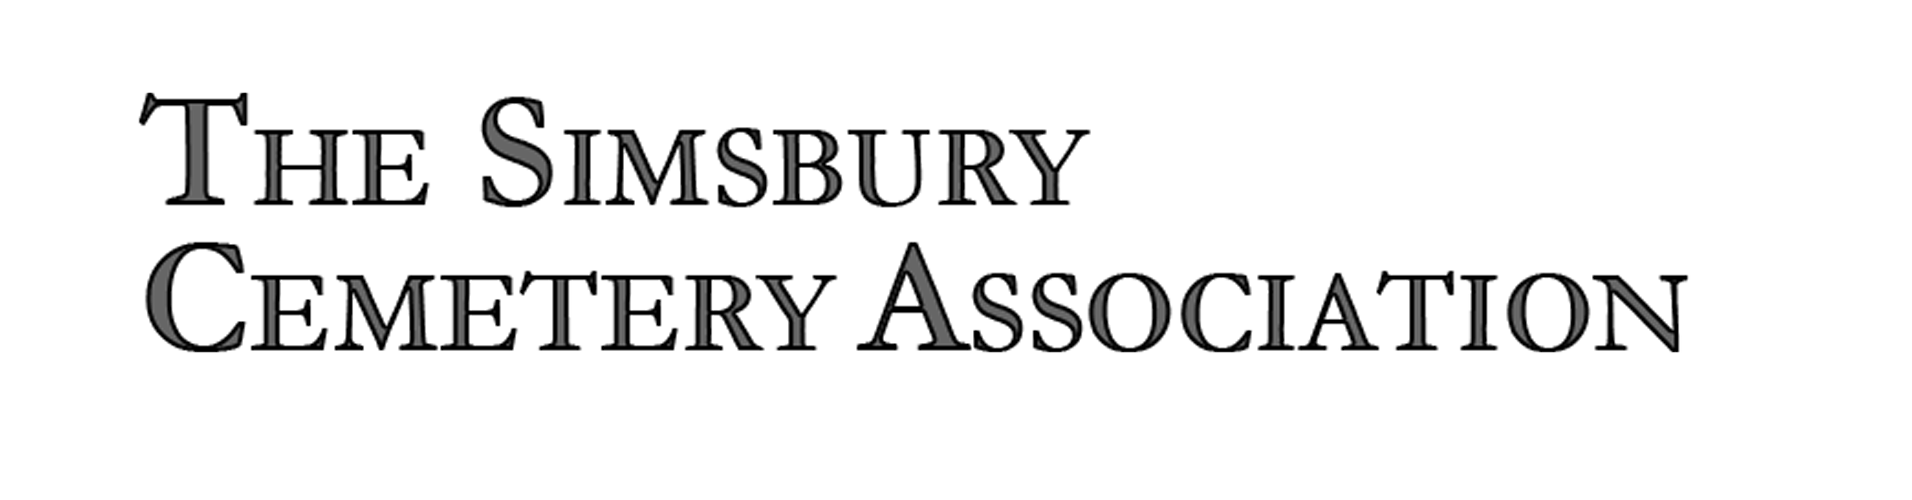 Logo for Simsbury Cemetery